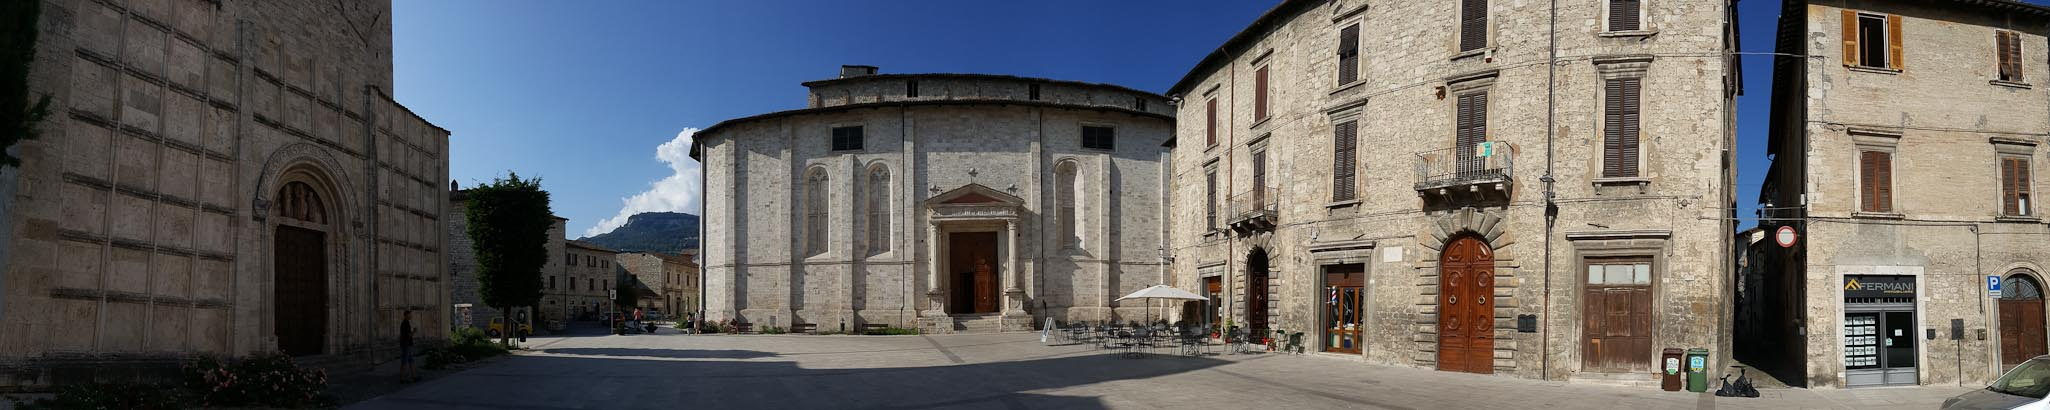 Piazza Arringo and the Ghost of Ascoli Piceno - Italian Notes